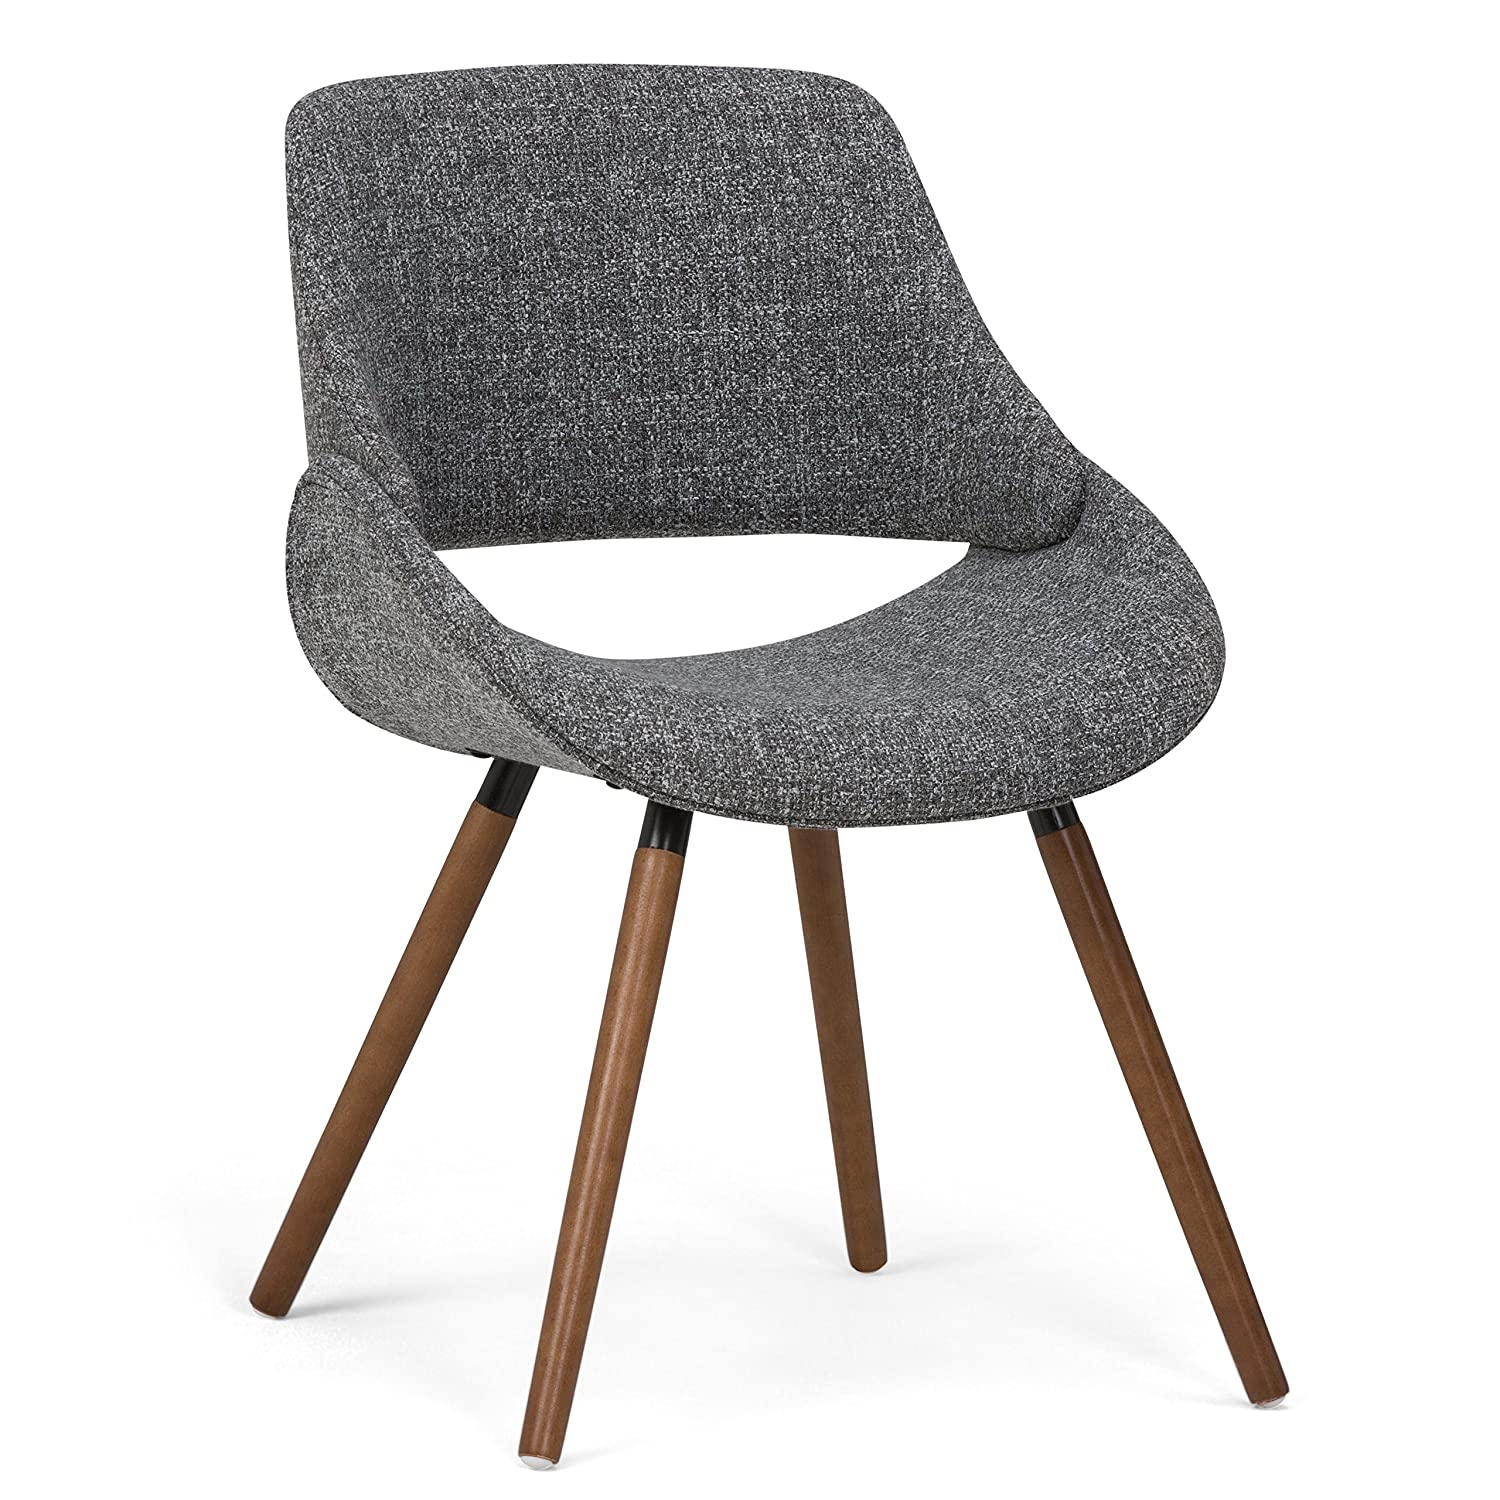 Simpli Home AXCMALN-G Malden Mid Century Modern Bentwood Dining Chair in Grey Woven Fabric